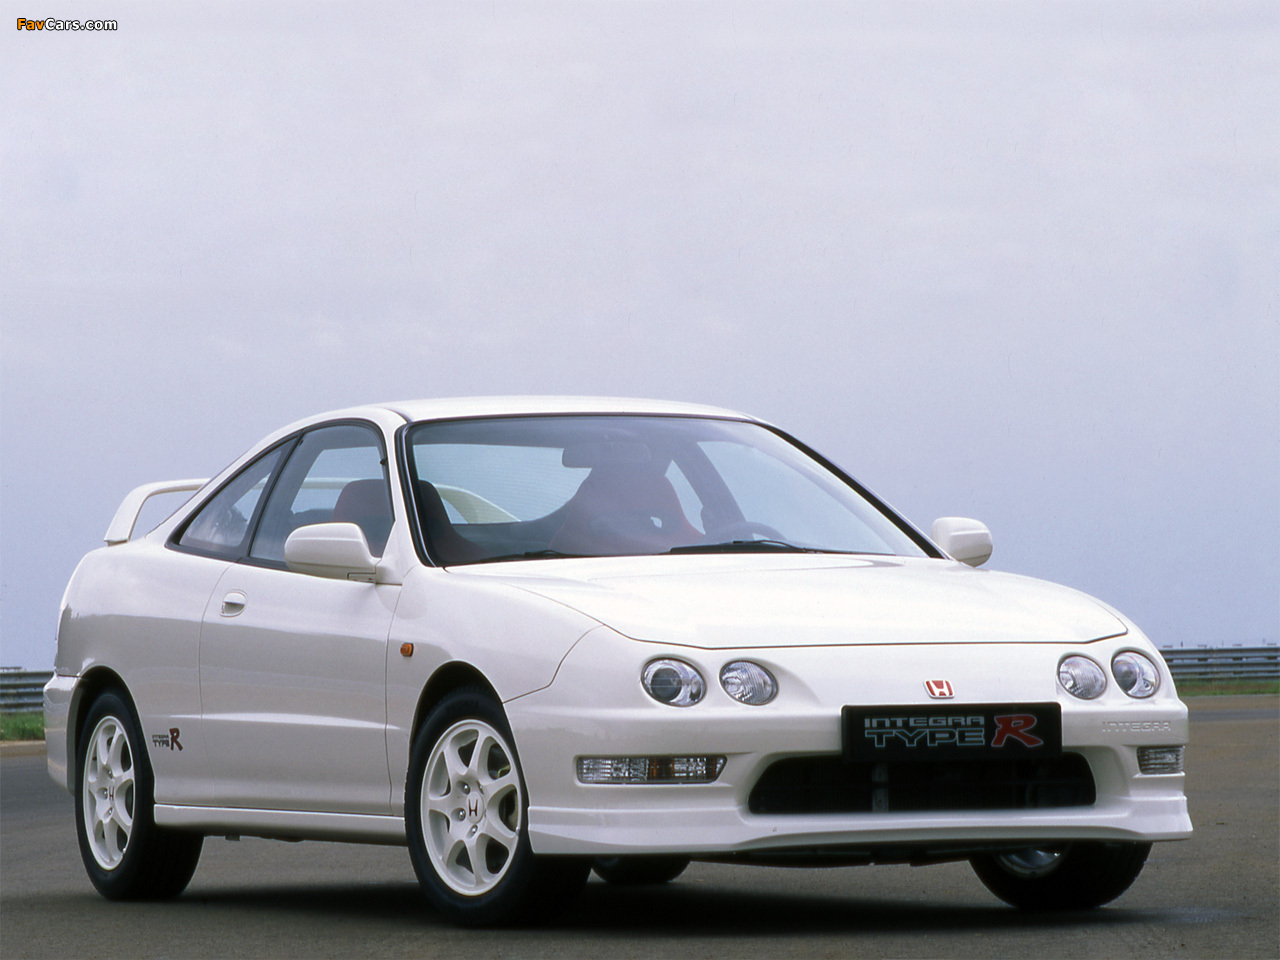 2000 Honda Integra coupe (dc2) – pictures, information and